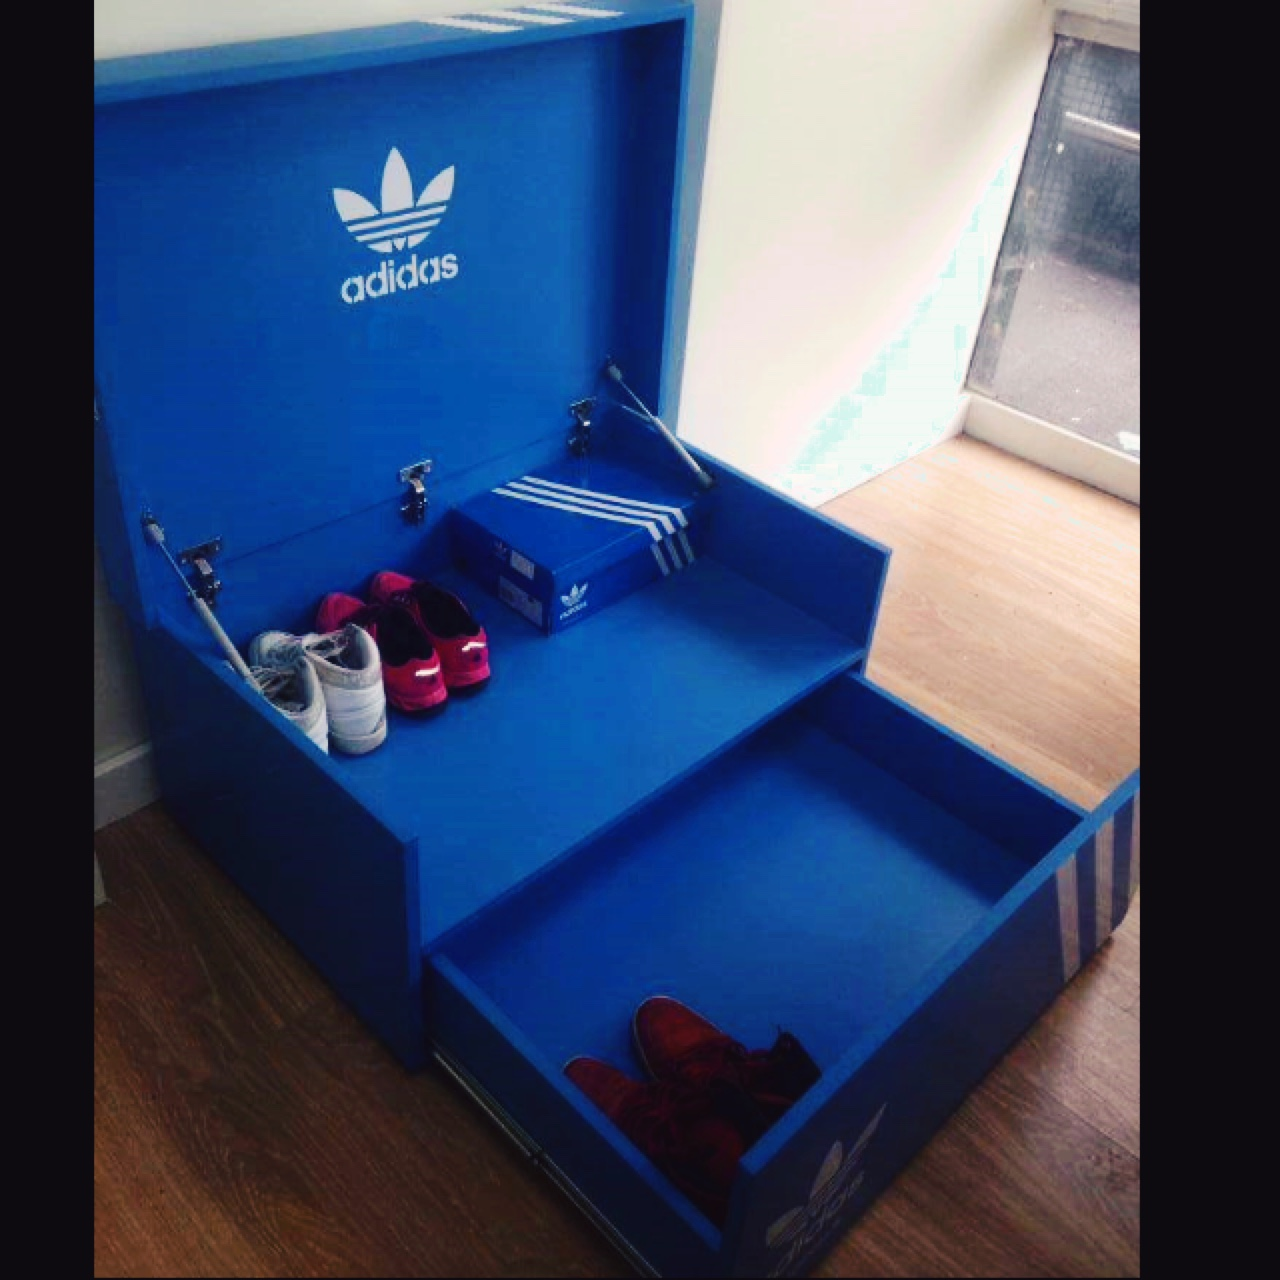 Adidas Shoe Box Stores around 16 pairs of shoes....